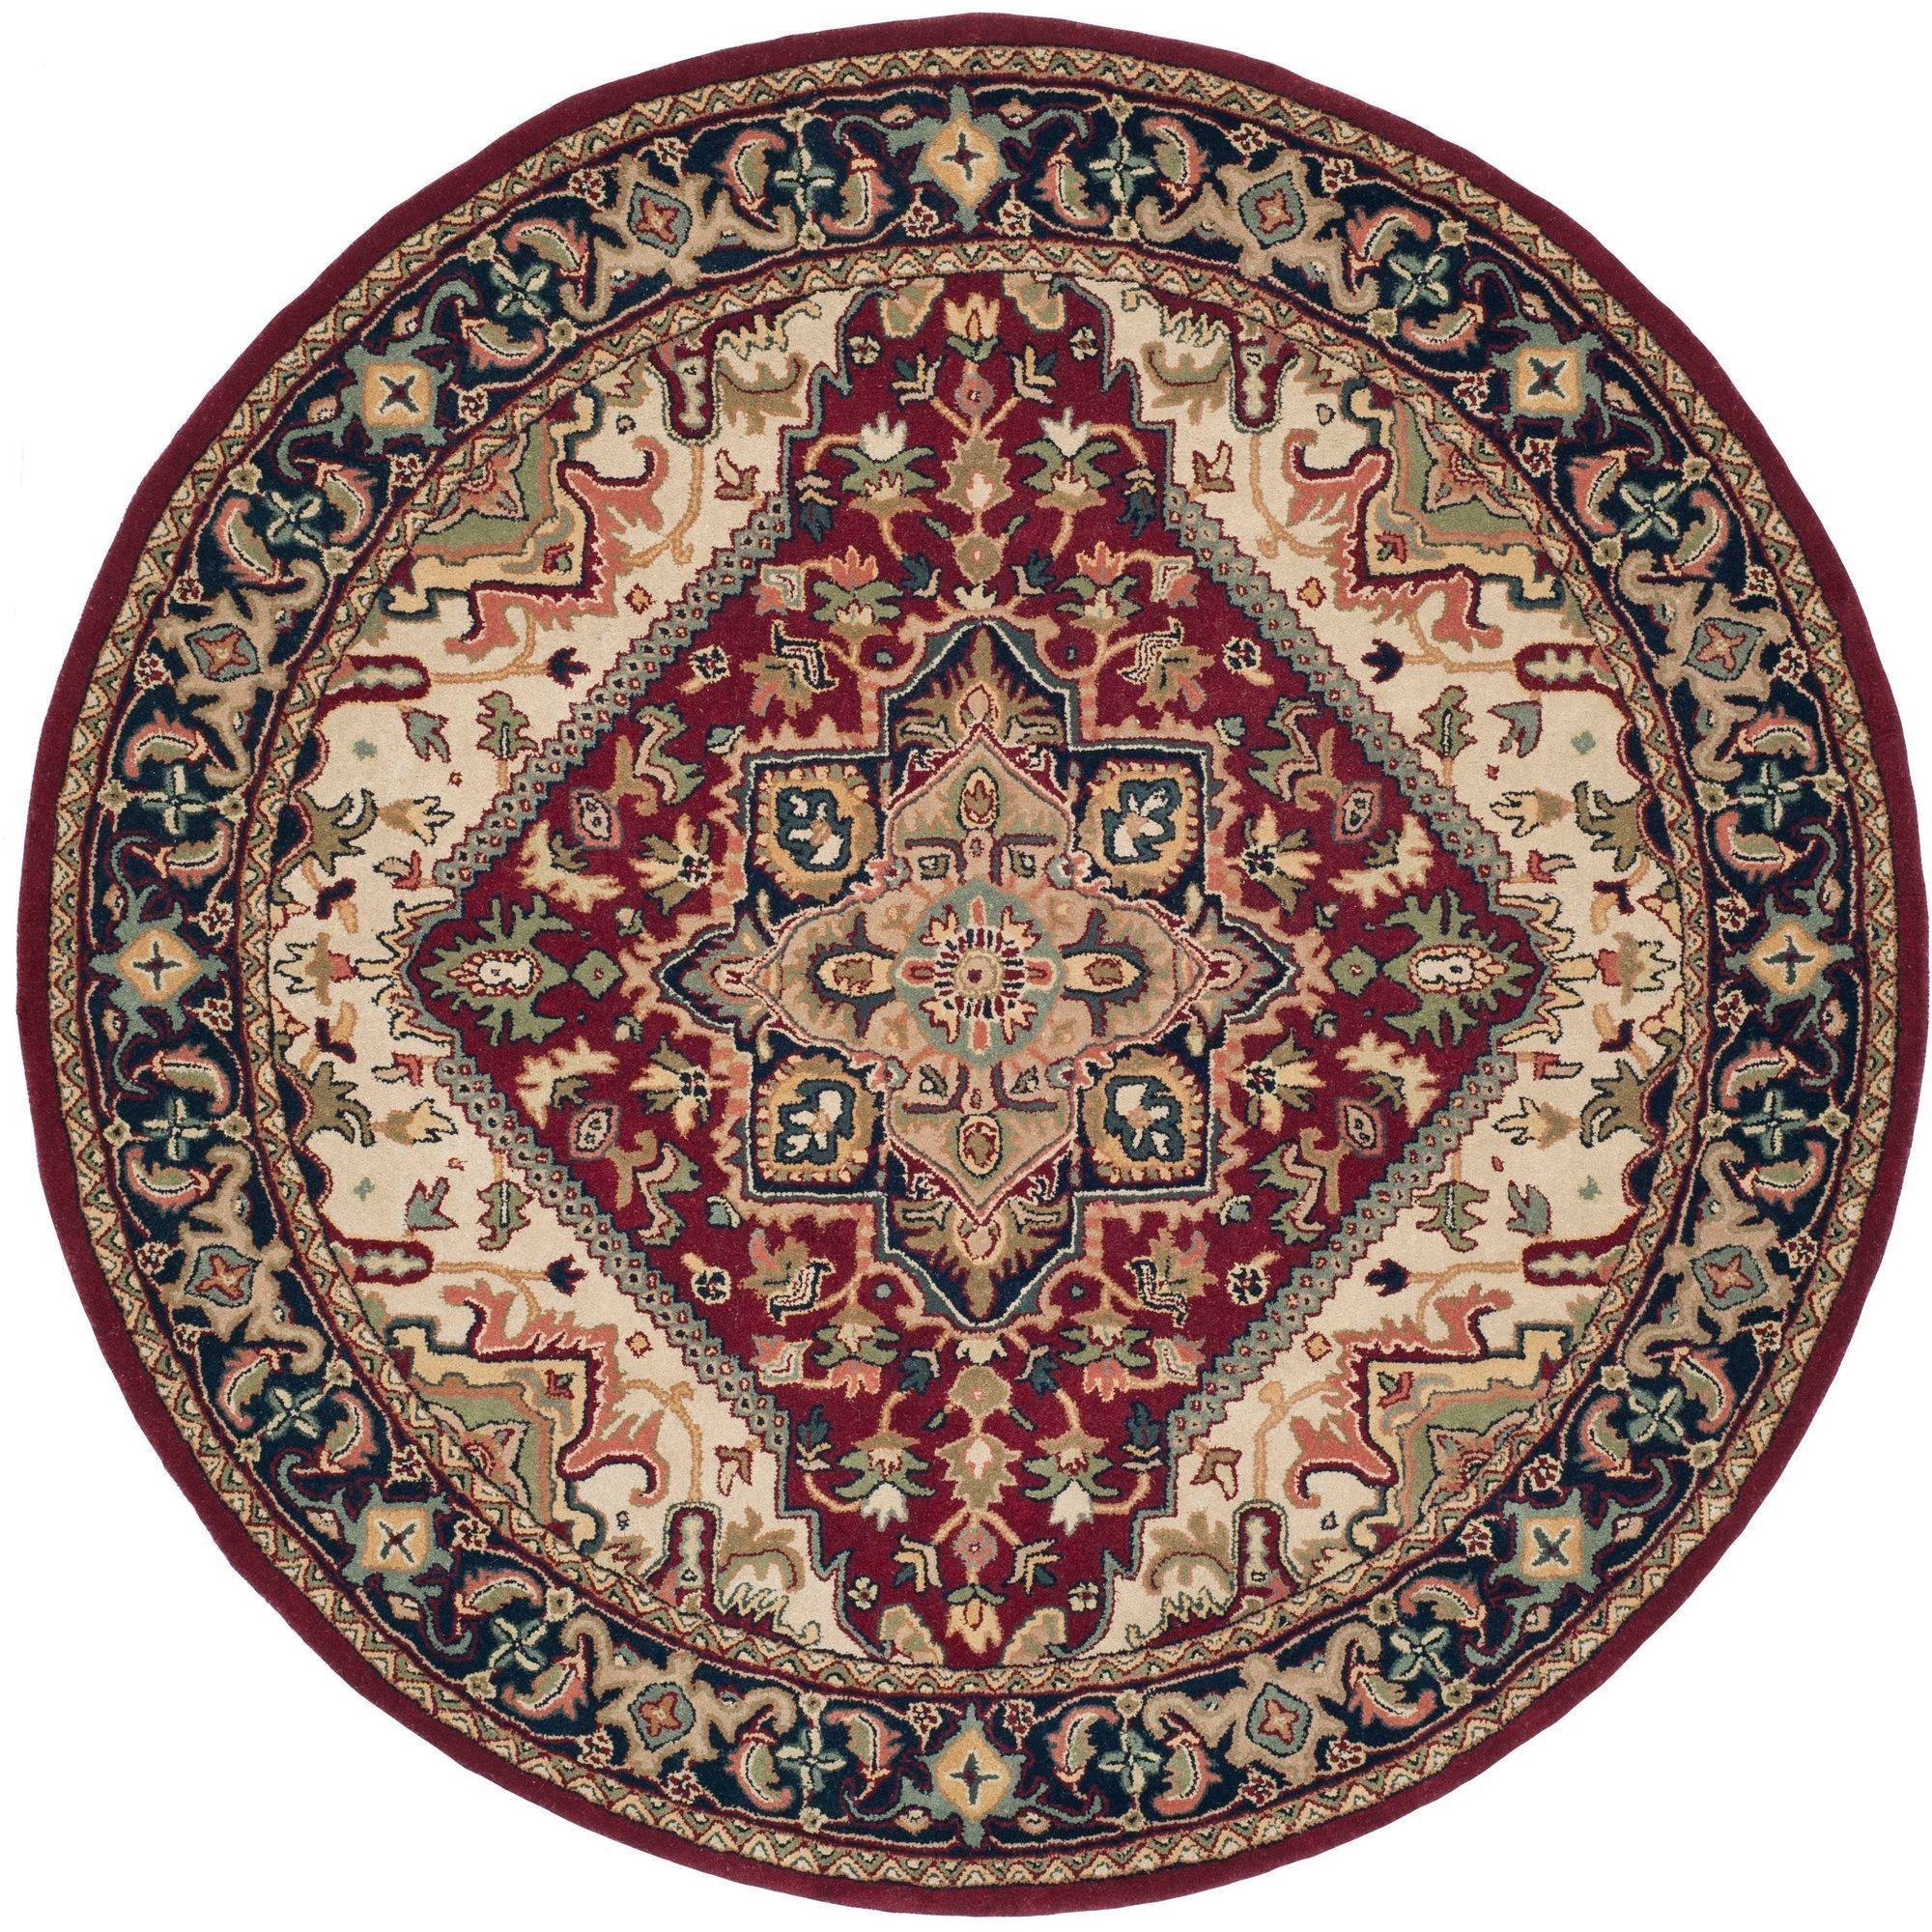 Round Area Rug 3 Feet 6 About This Picture 1 Of 5 2